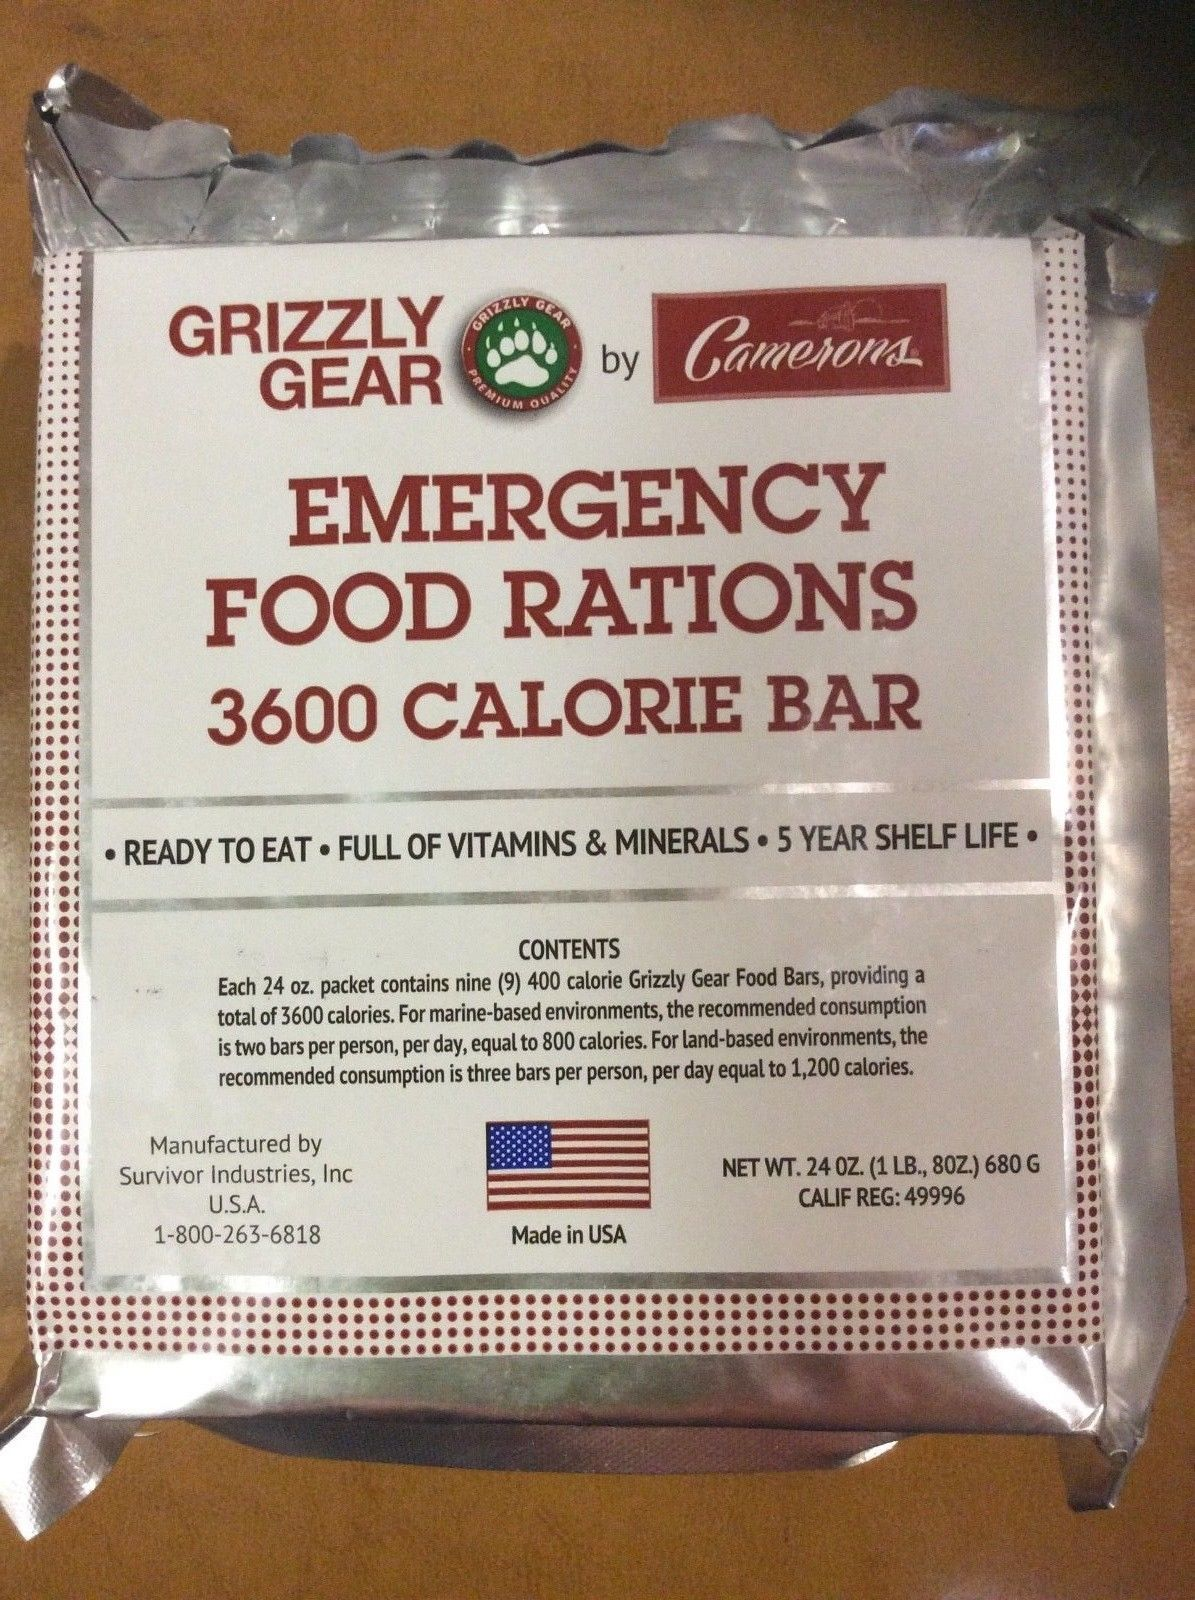 grizzly gear emergency food rations